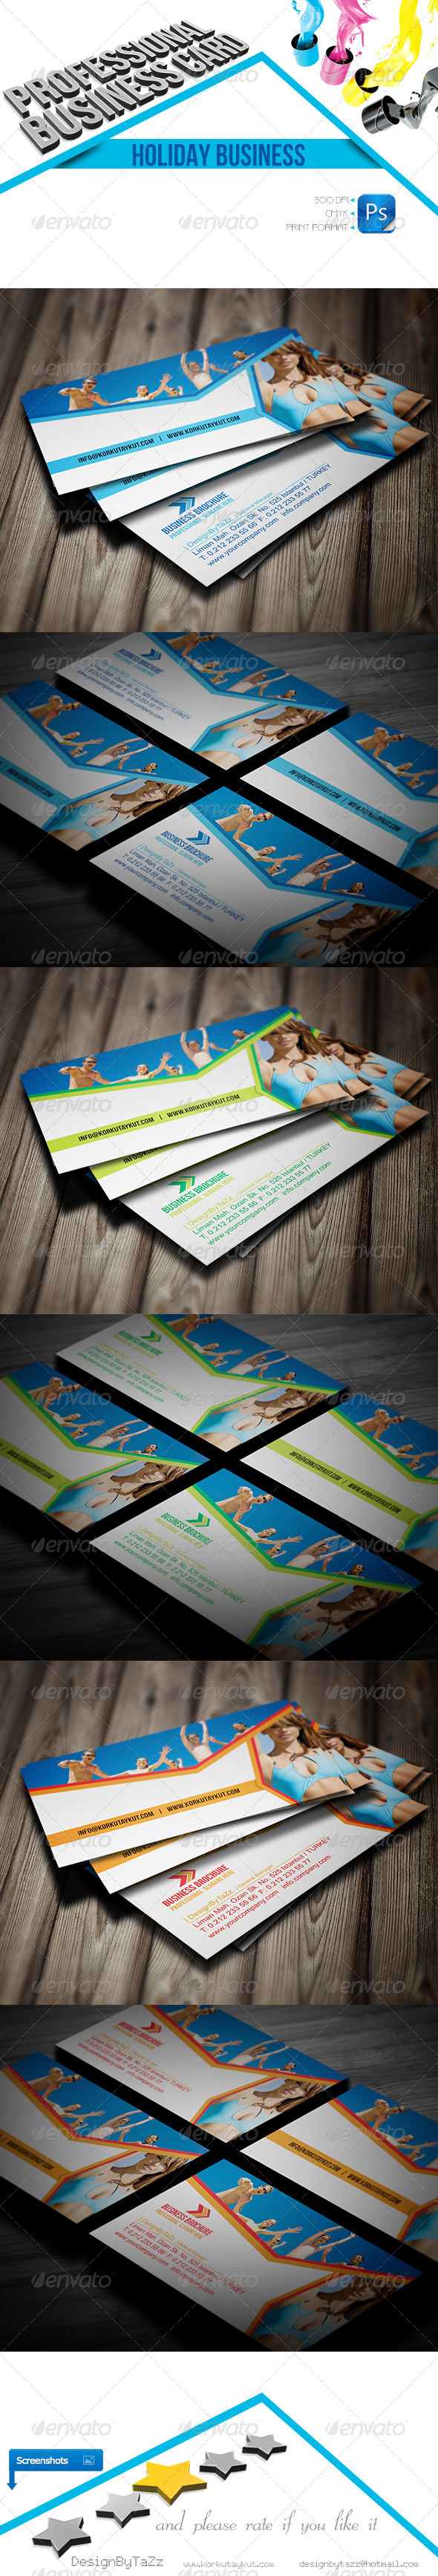 Holiday Business Cards - Business Cards Print Templates